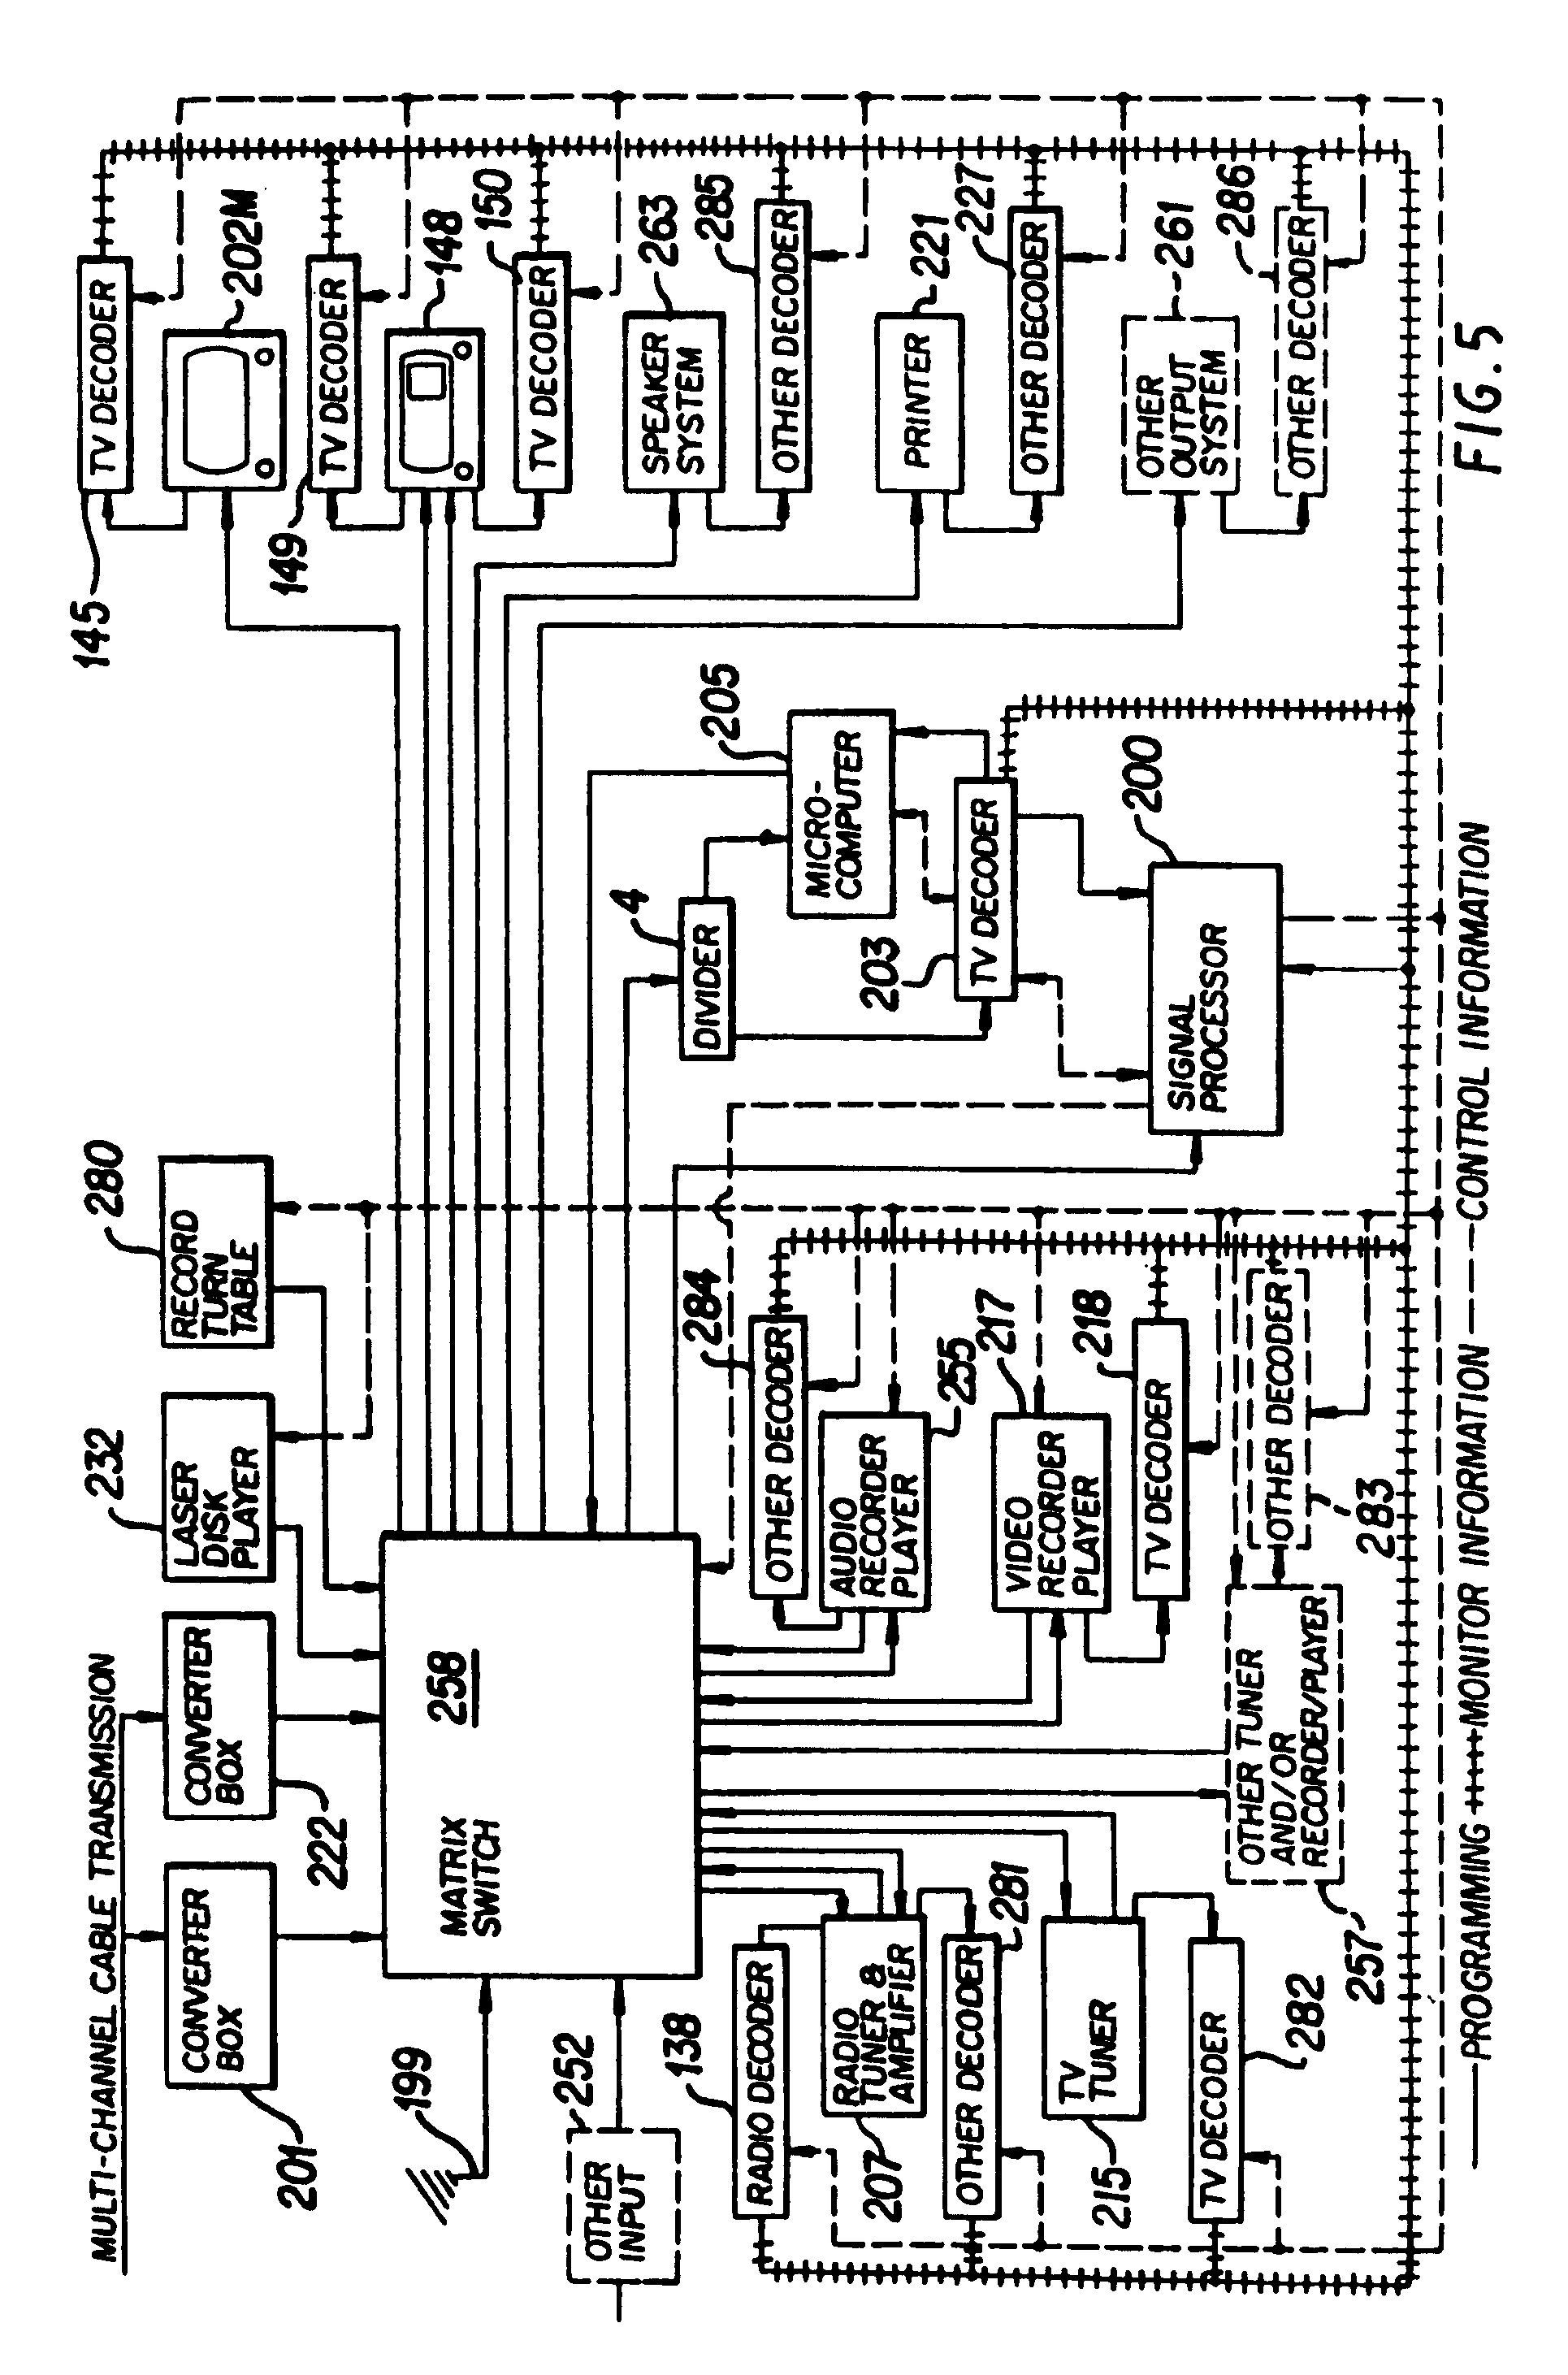 Us7793332b1 Signal Processing Apparatus And Methods Google Patents Saab Sid Wiring Diagram